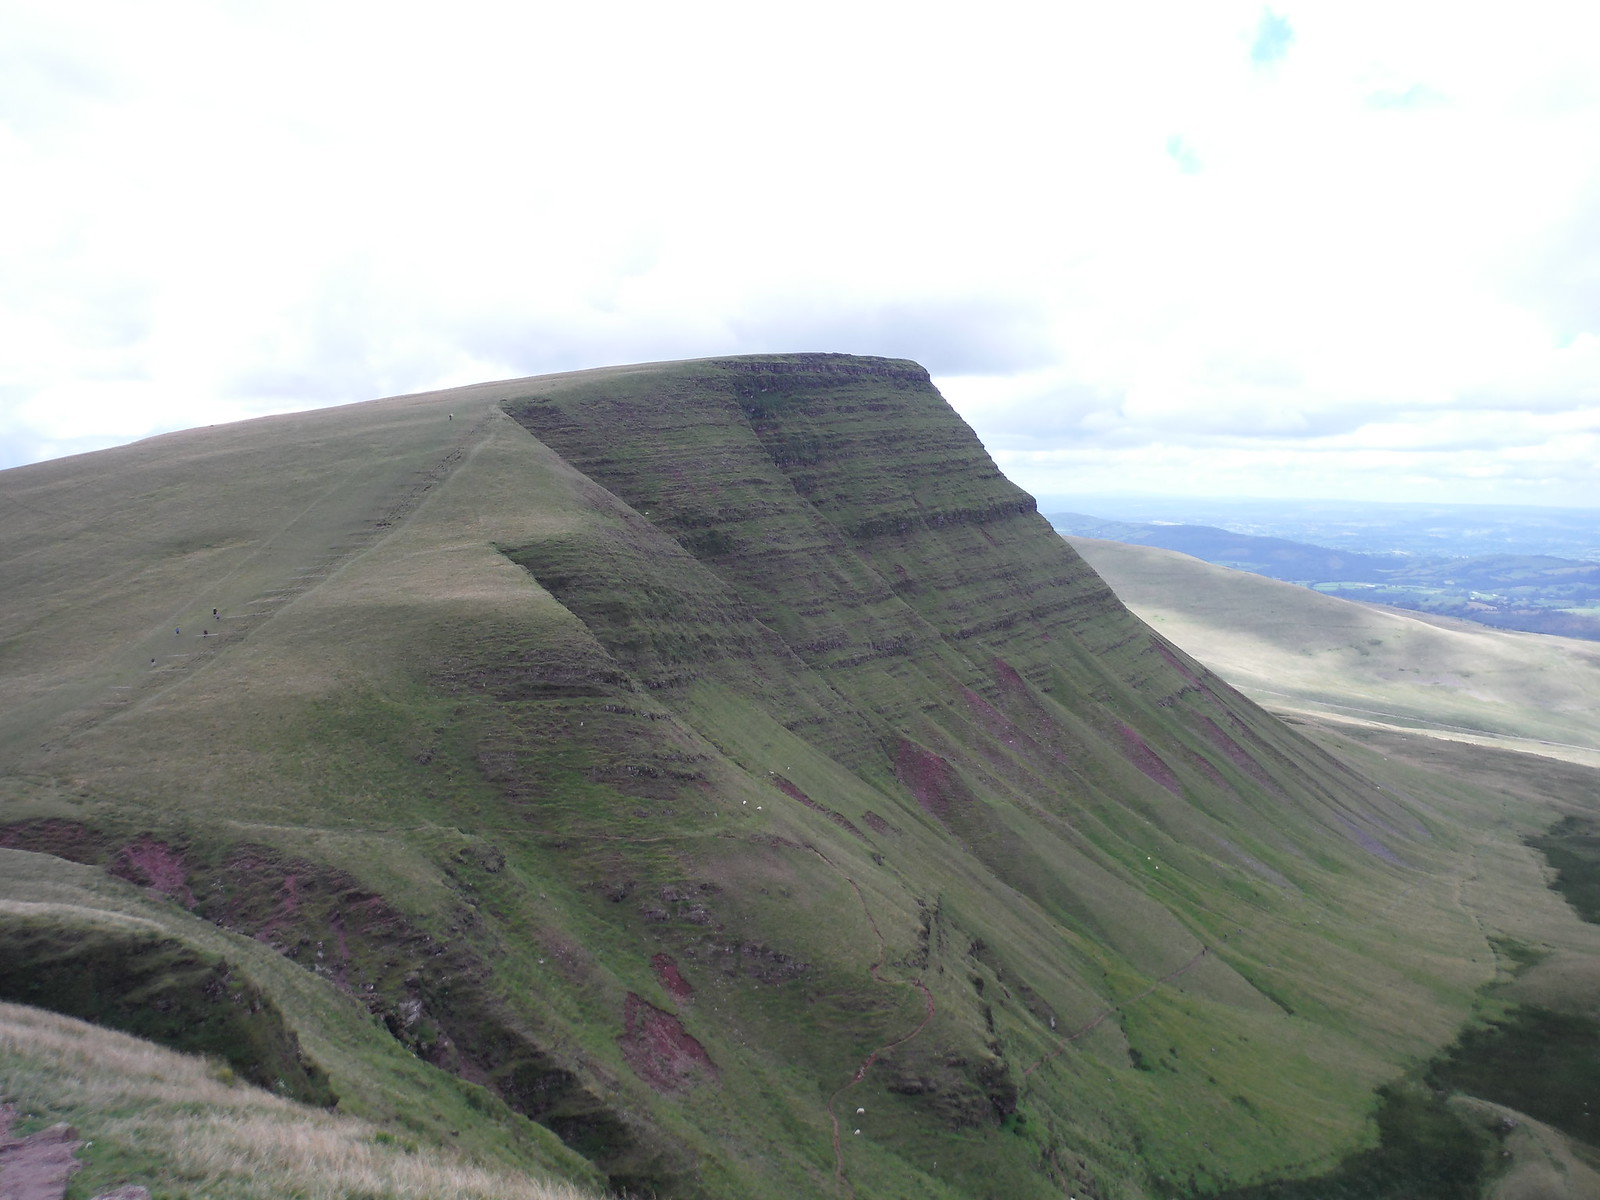 Picws Du, from Fan Foel SWC Walk 279 The Black Mountain - Y Mynydd Du (Glyntawe Circular)